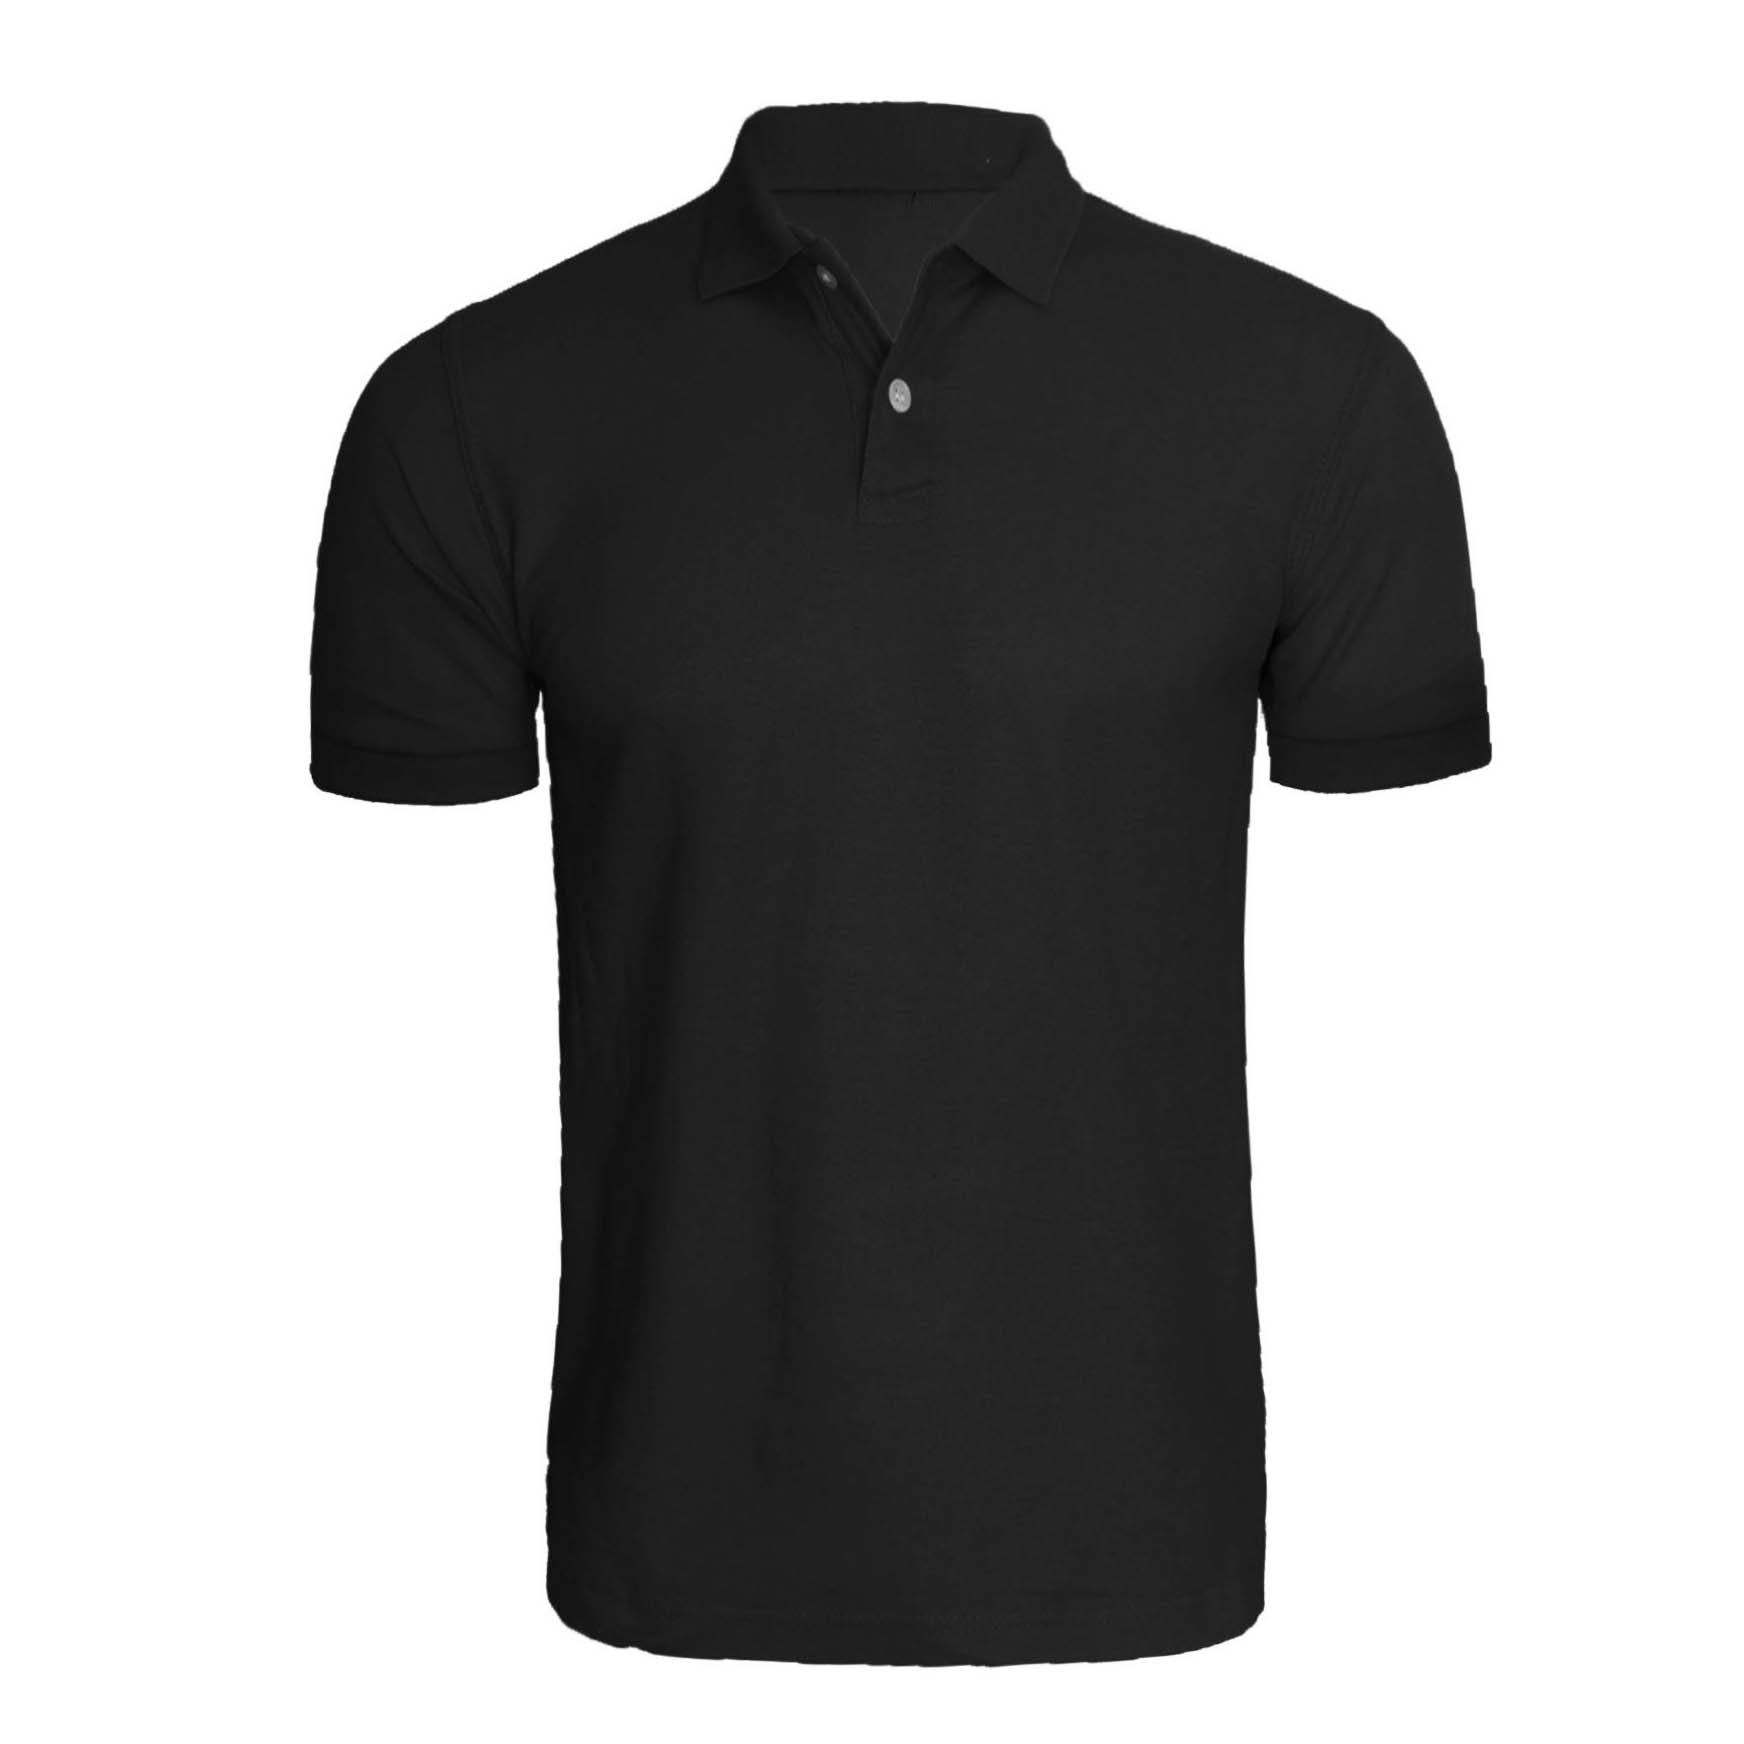 Wholesale custom made design your own sublimated polo shirt for men